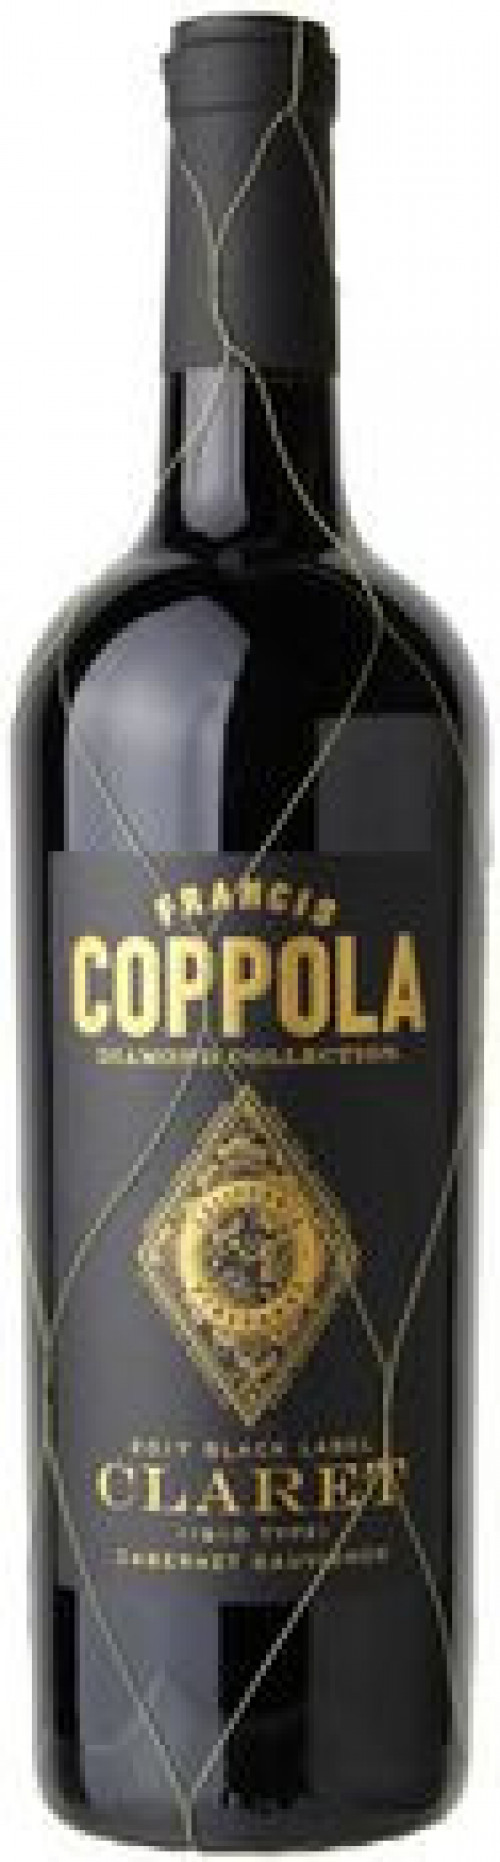 Francis Coppola Claret Black Label 750ml